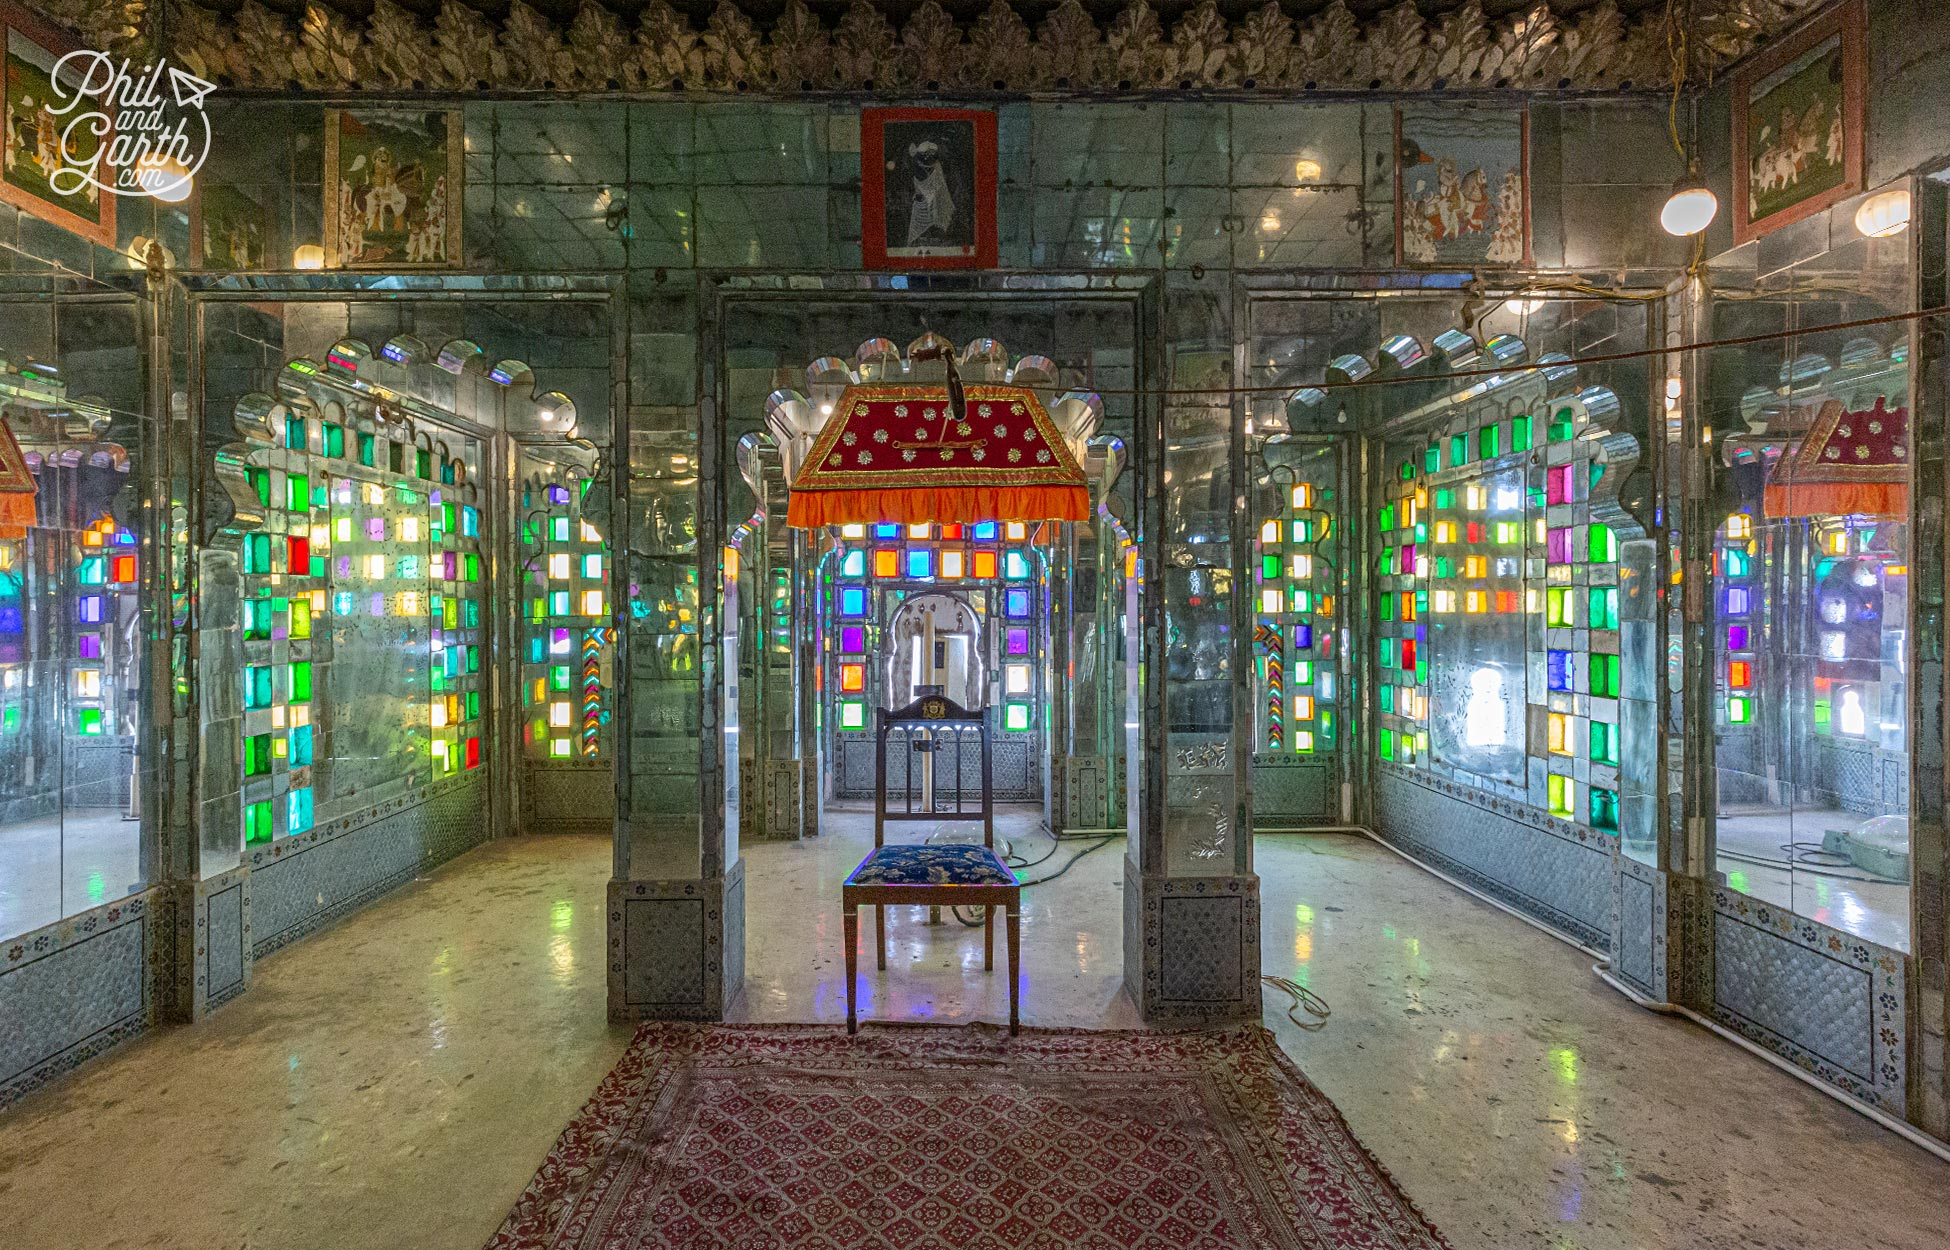 Manak Mahal (The Ruby Palace) The light in this room from the coloured stained glass and mirrored walls is stunning